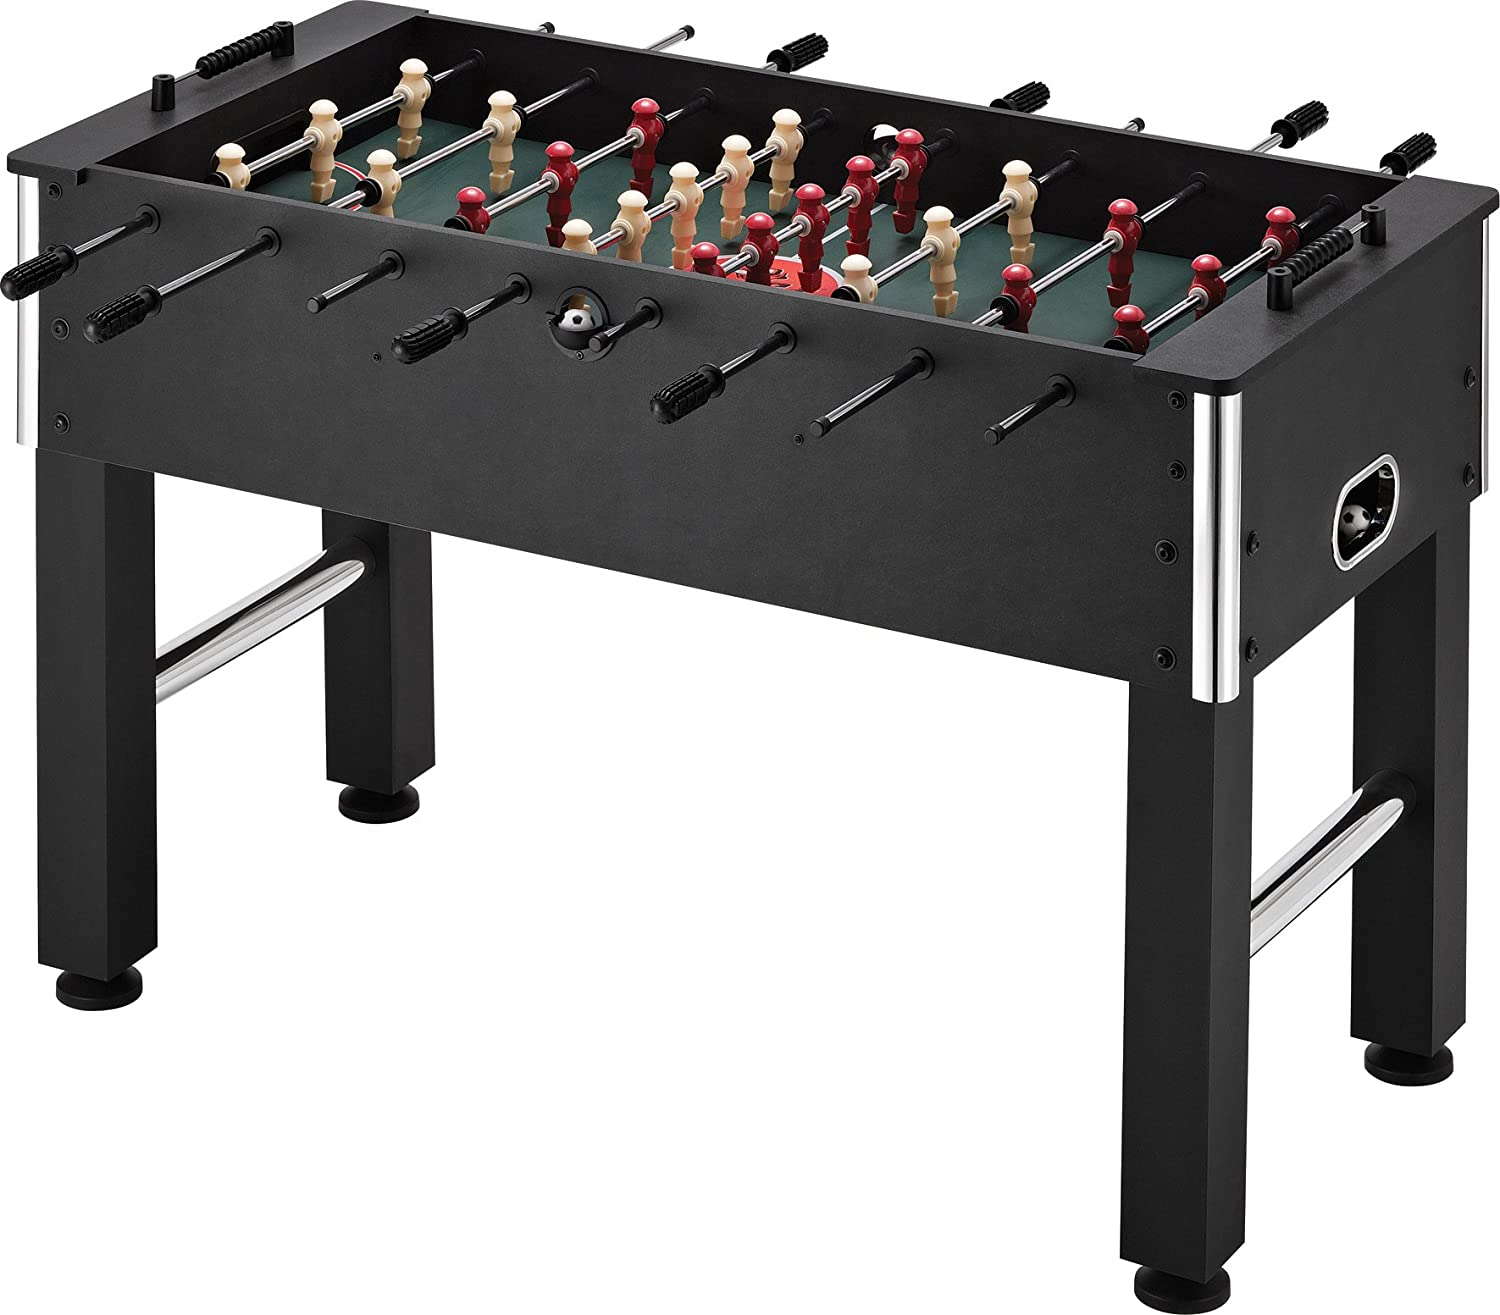 Fat Cat Madrid Foosball/Soccer Game Table, Foosball Tables - Amazon ...